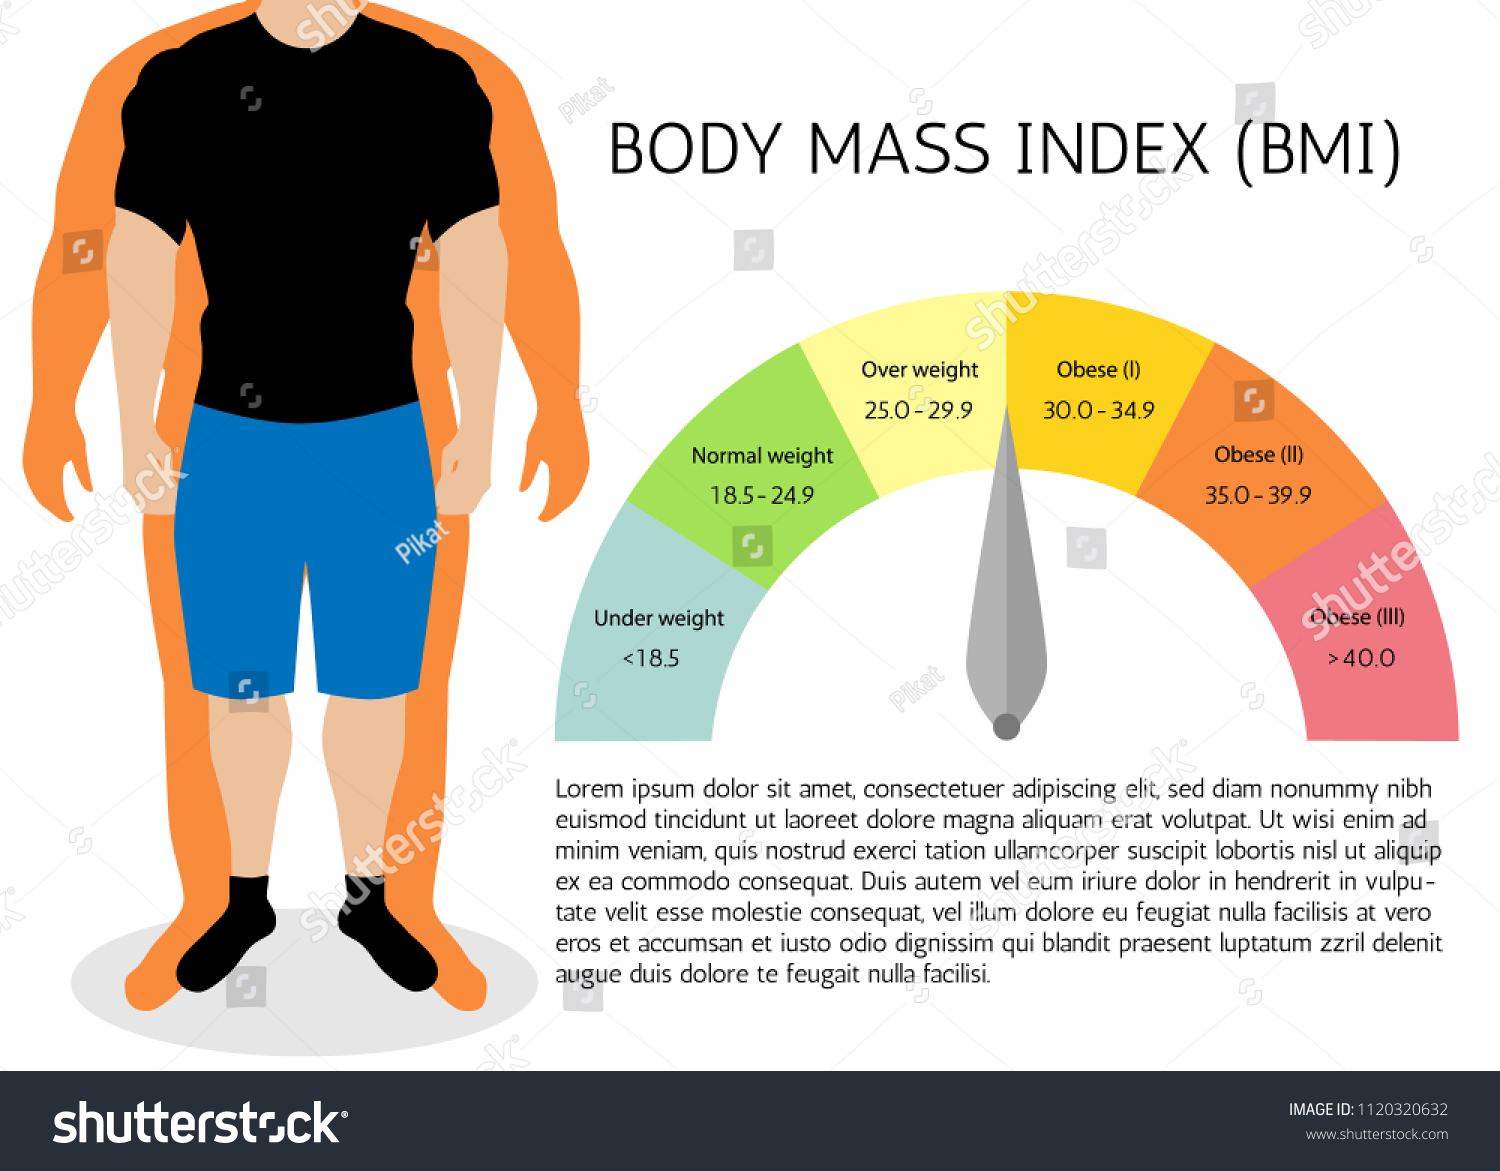 Bmi Body Mass Index Infographic Chartvector Stock Vector Royalty Free 1120320632